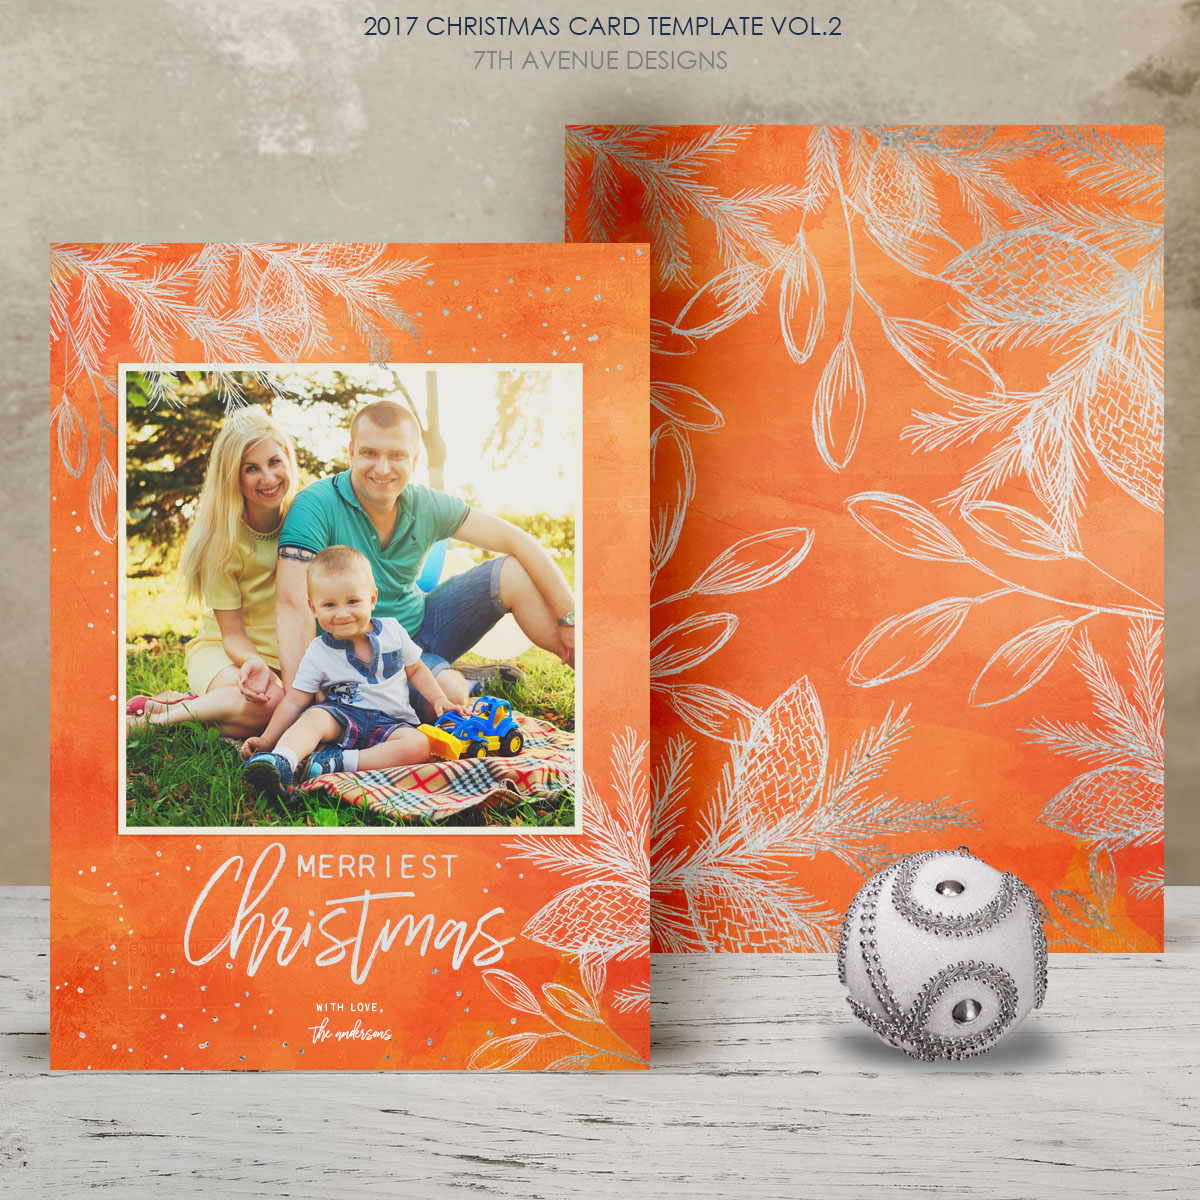 2017 Christmas Card Templates vol.2